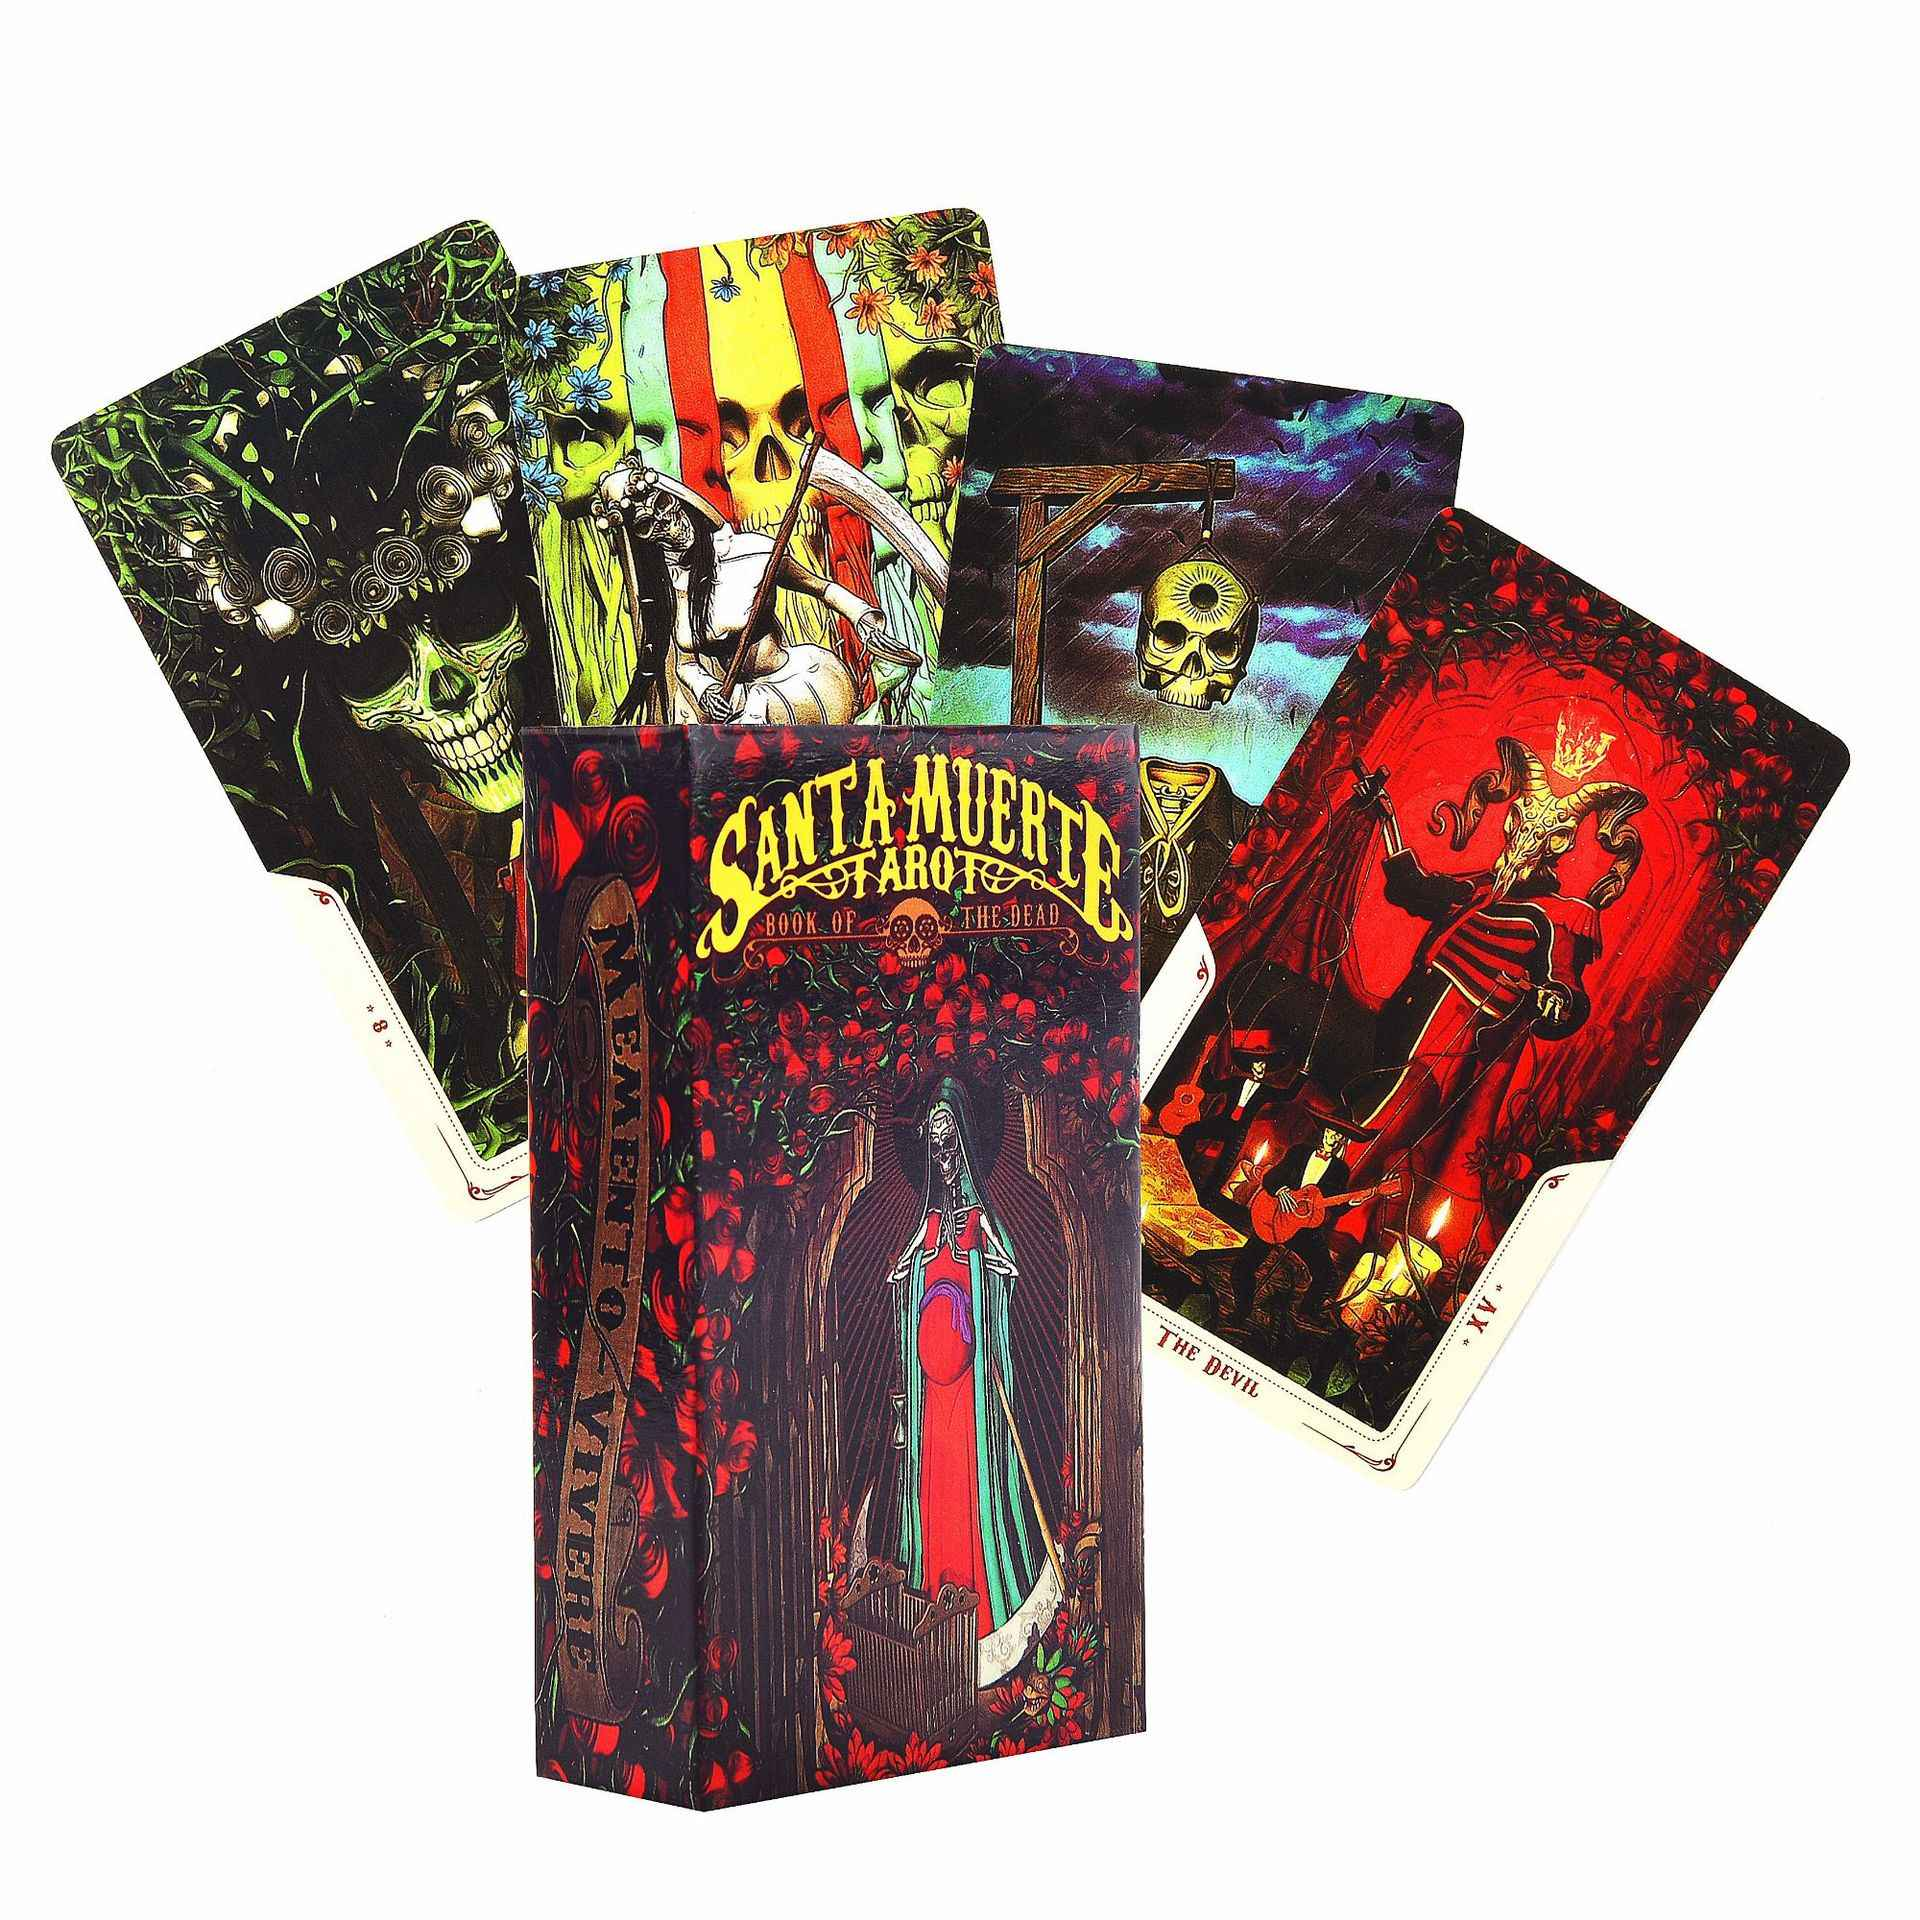 Tarot Cards Box Santa Muerte Tarot Deck Table Board Game Cards Game English Cards For Party Entertainment Games Playing Cards Card Games Aliexpress